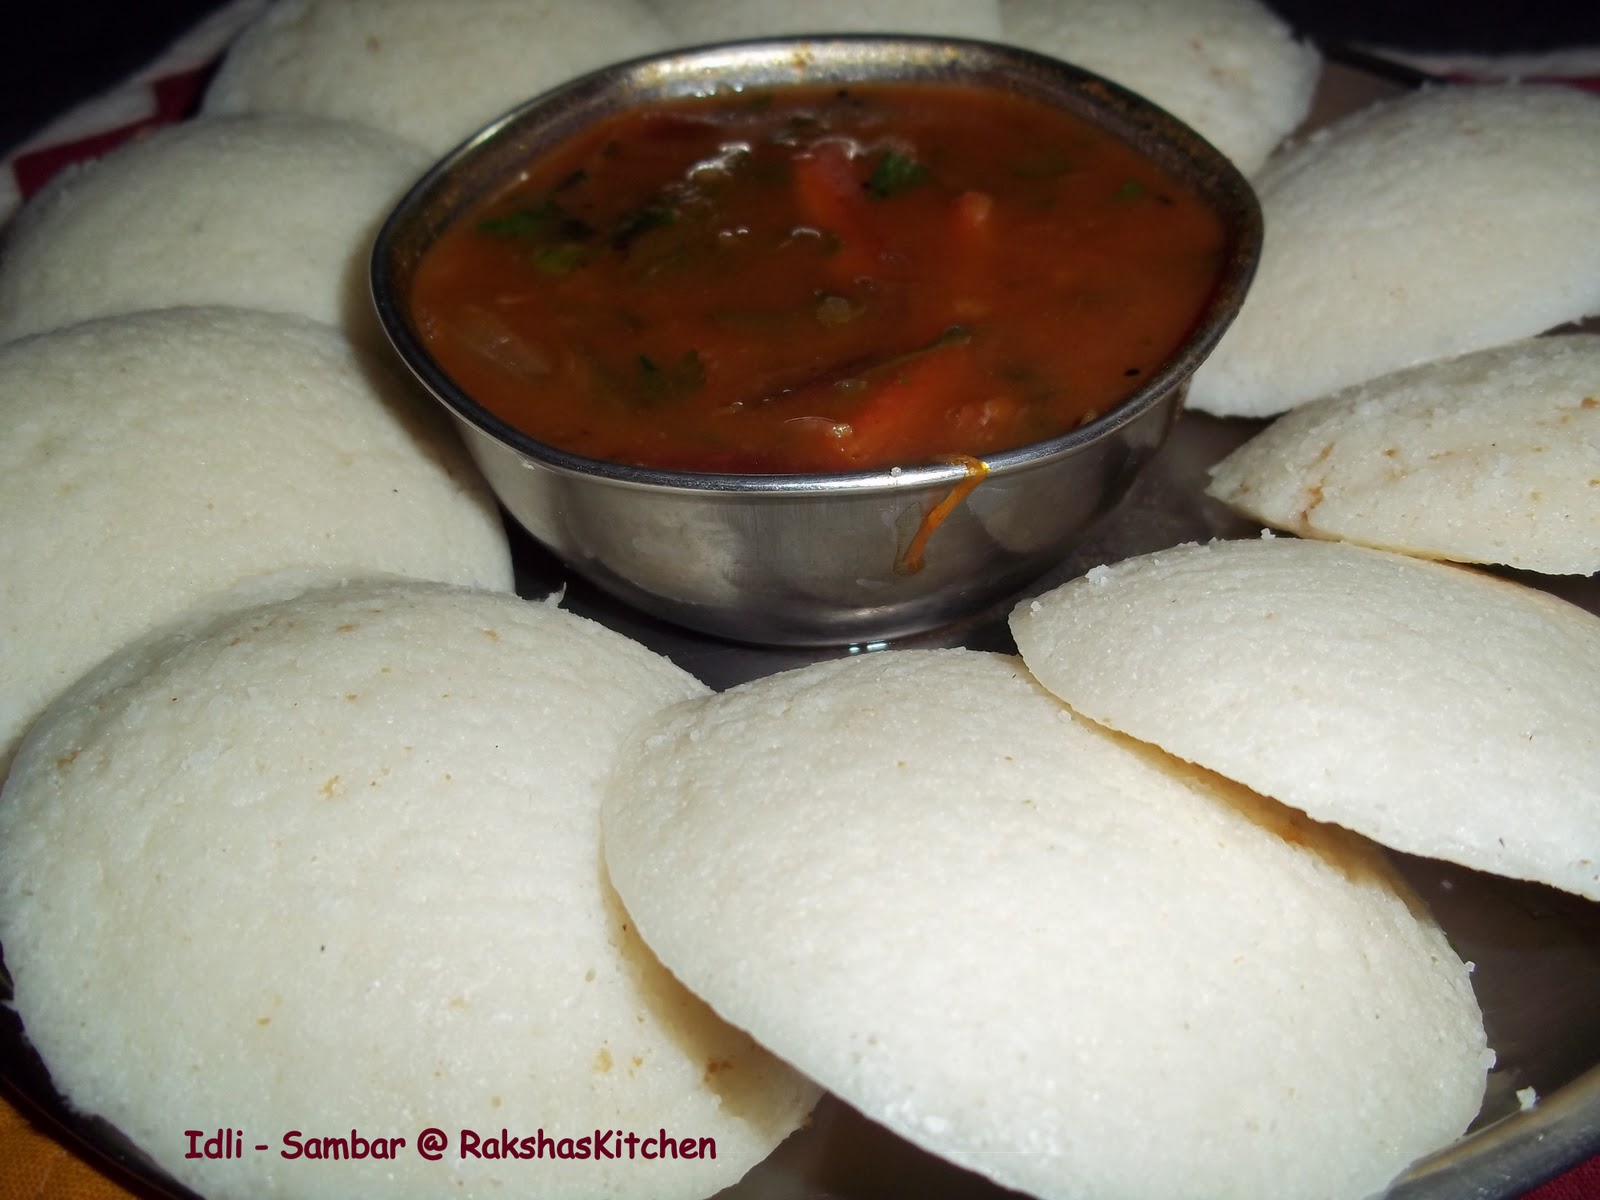 essay on my favourite food idli